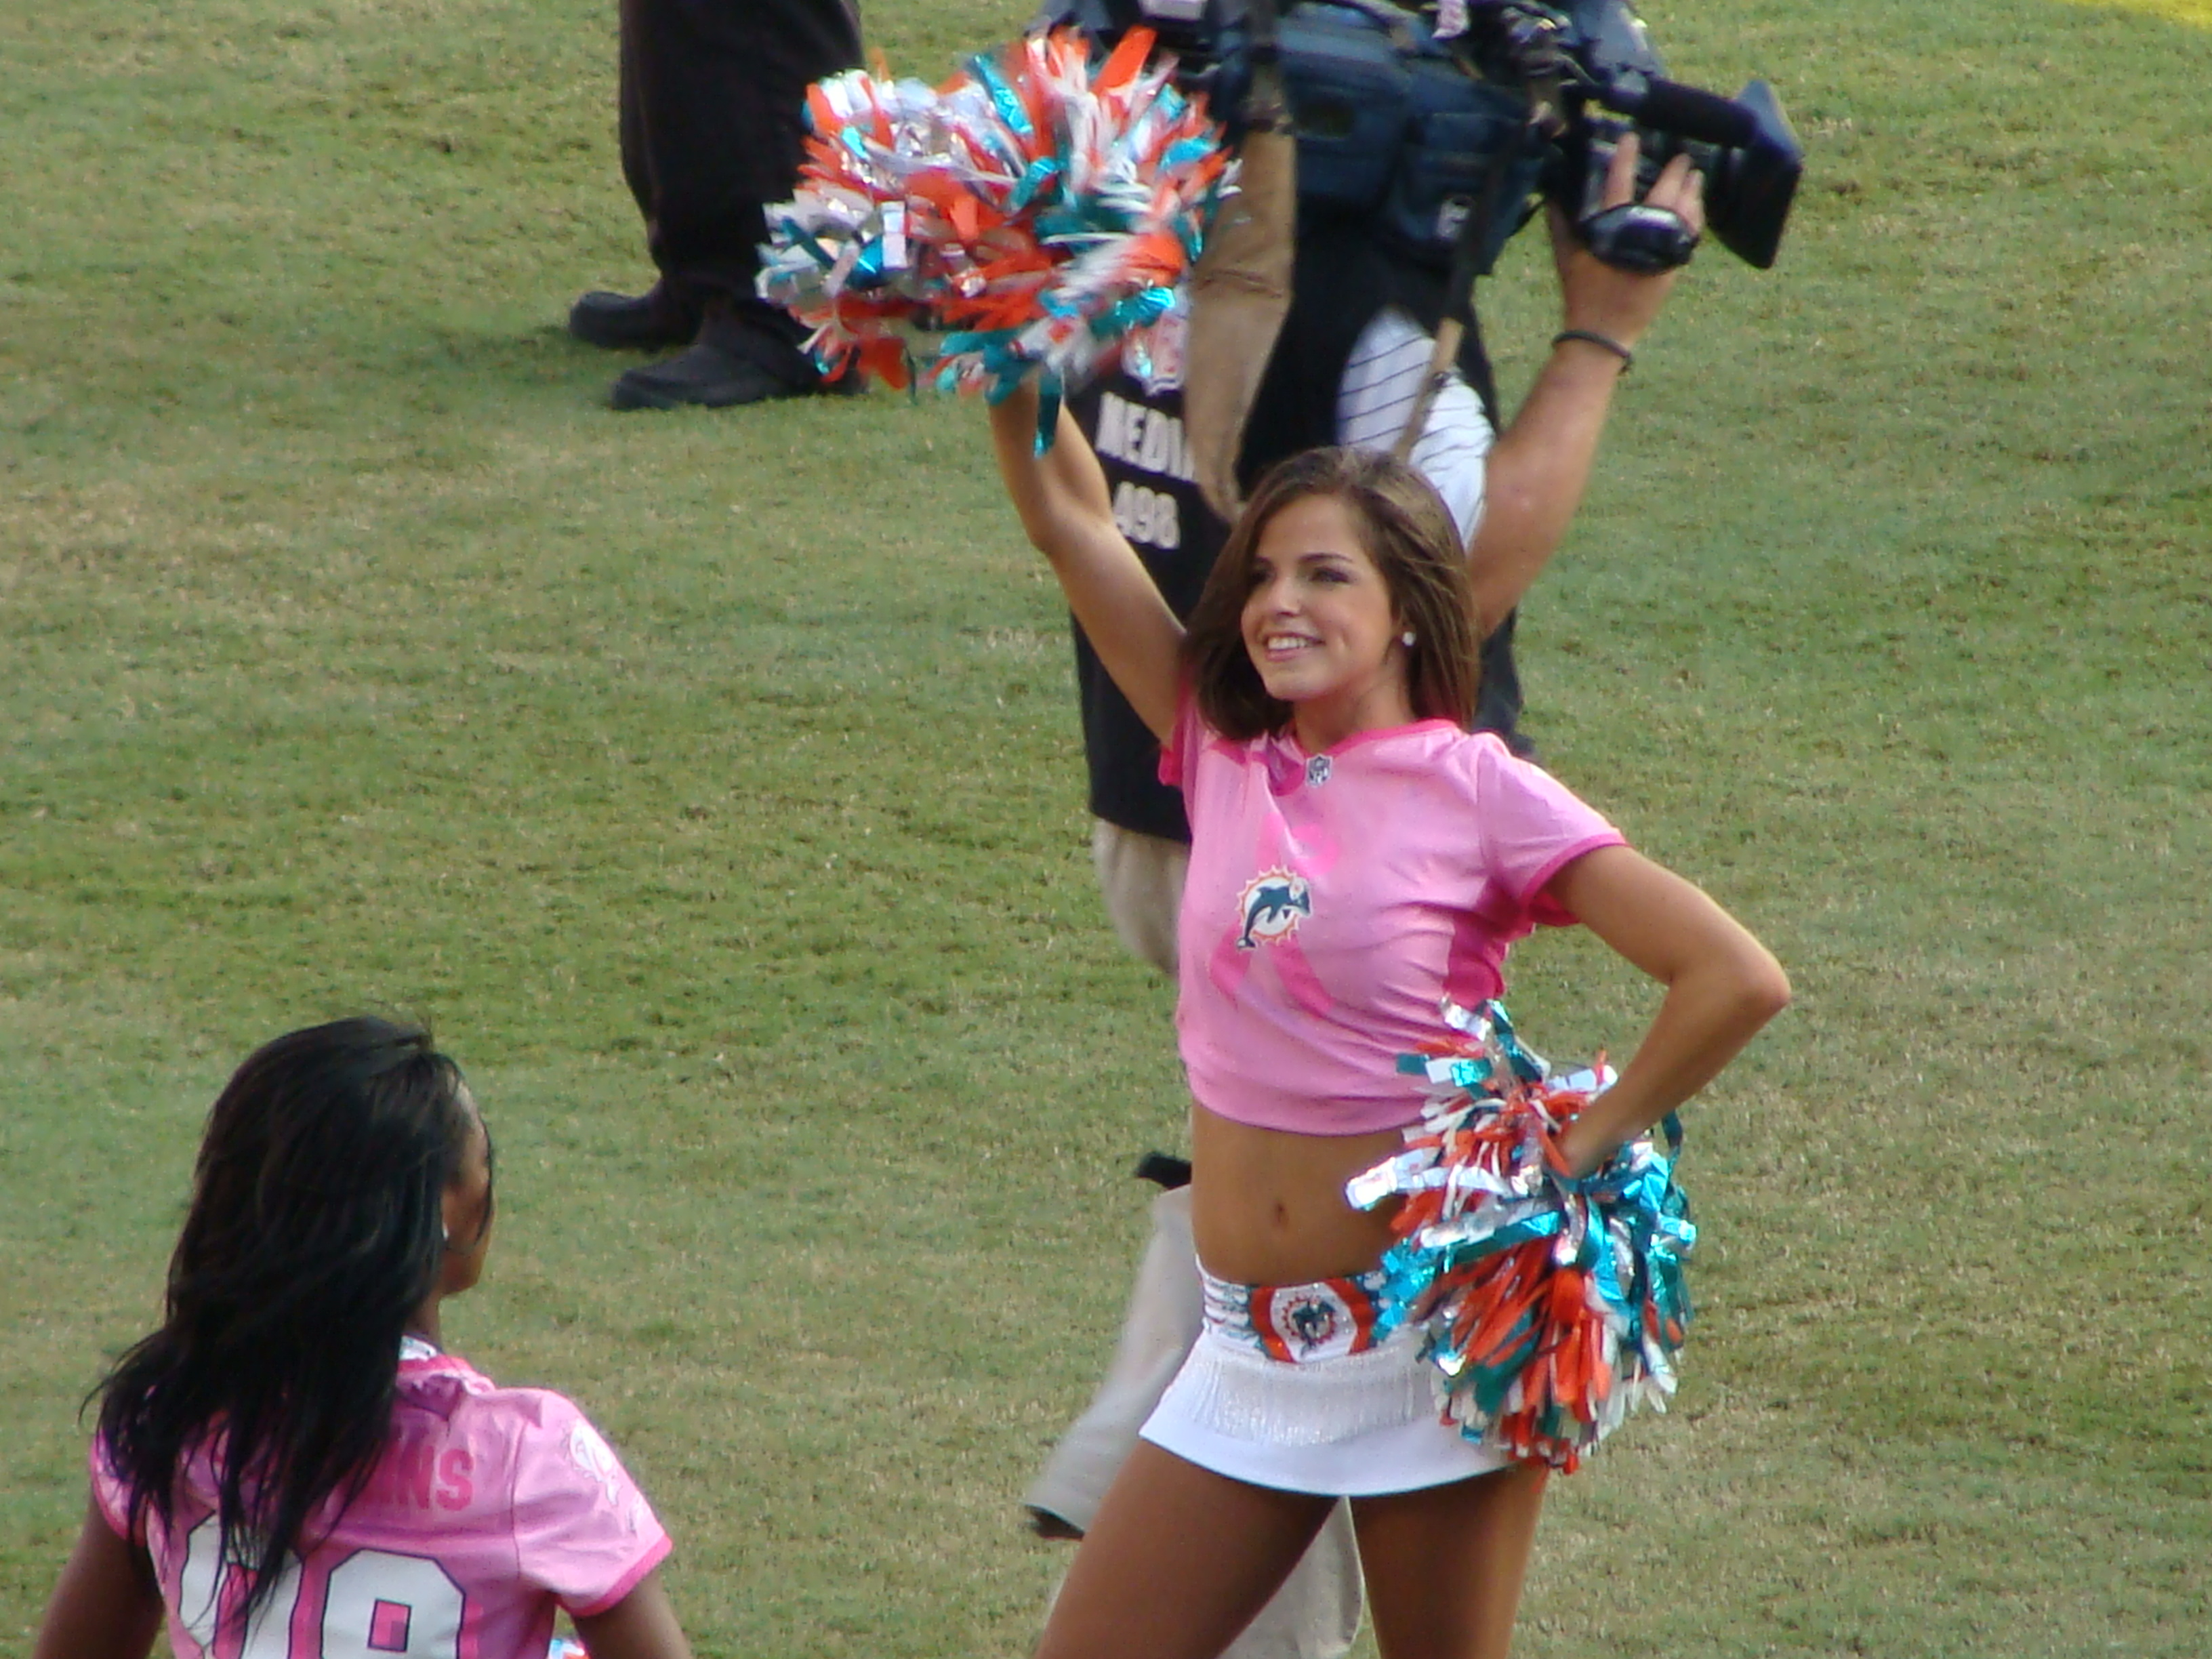 Not that I was lookingat them but the cheerleaders wore pink too